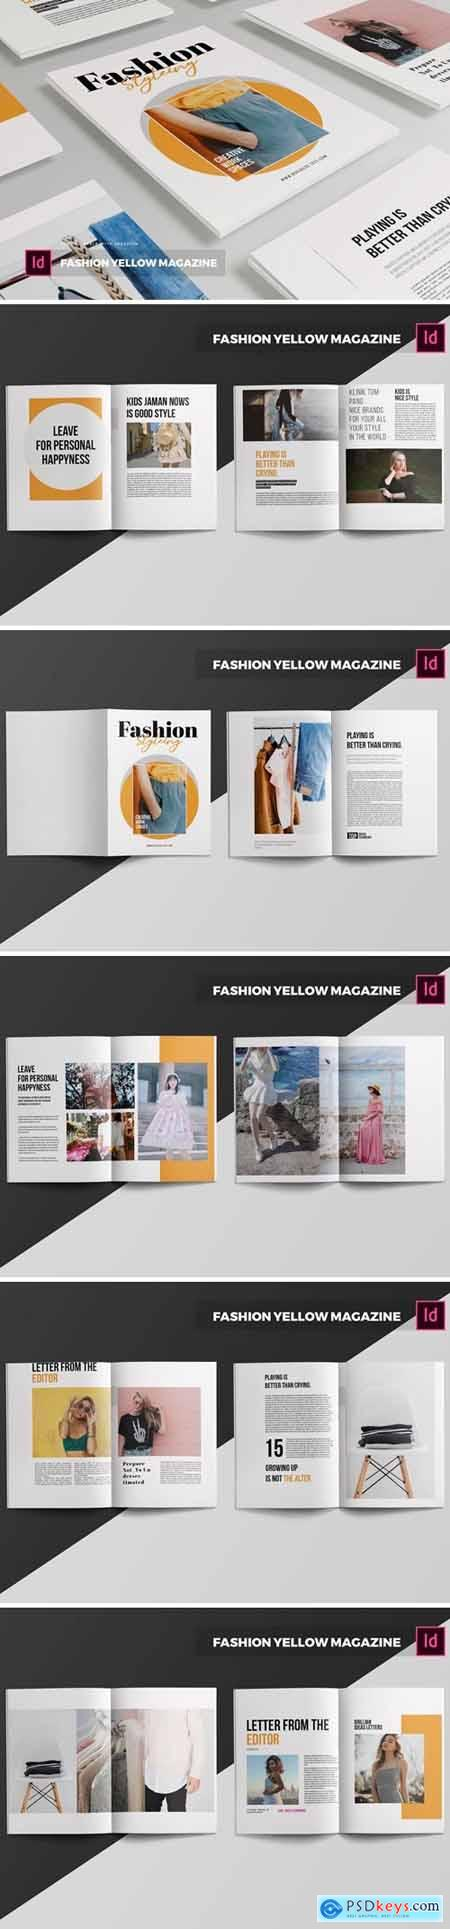 Fashion Yellow Magazine Template